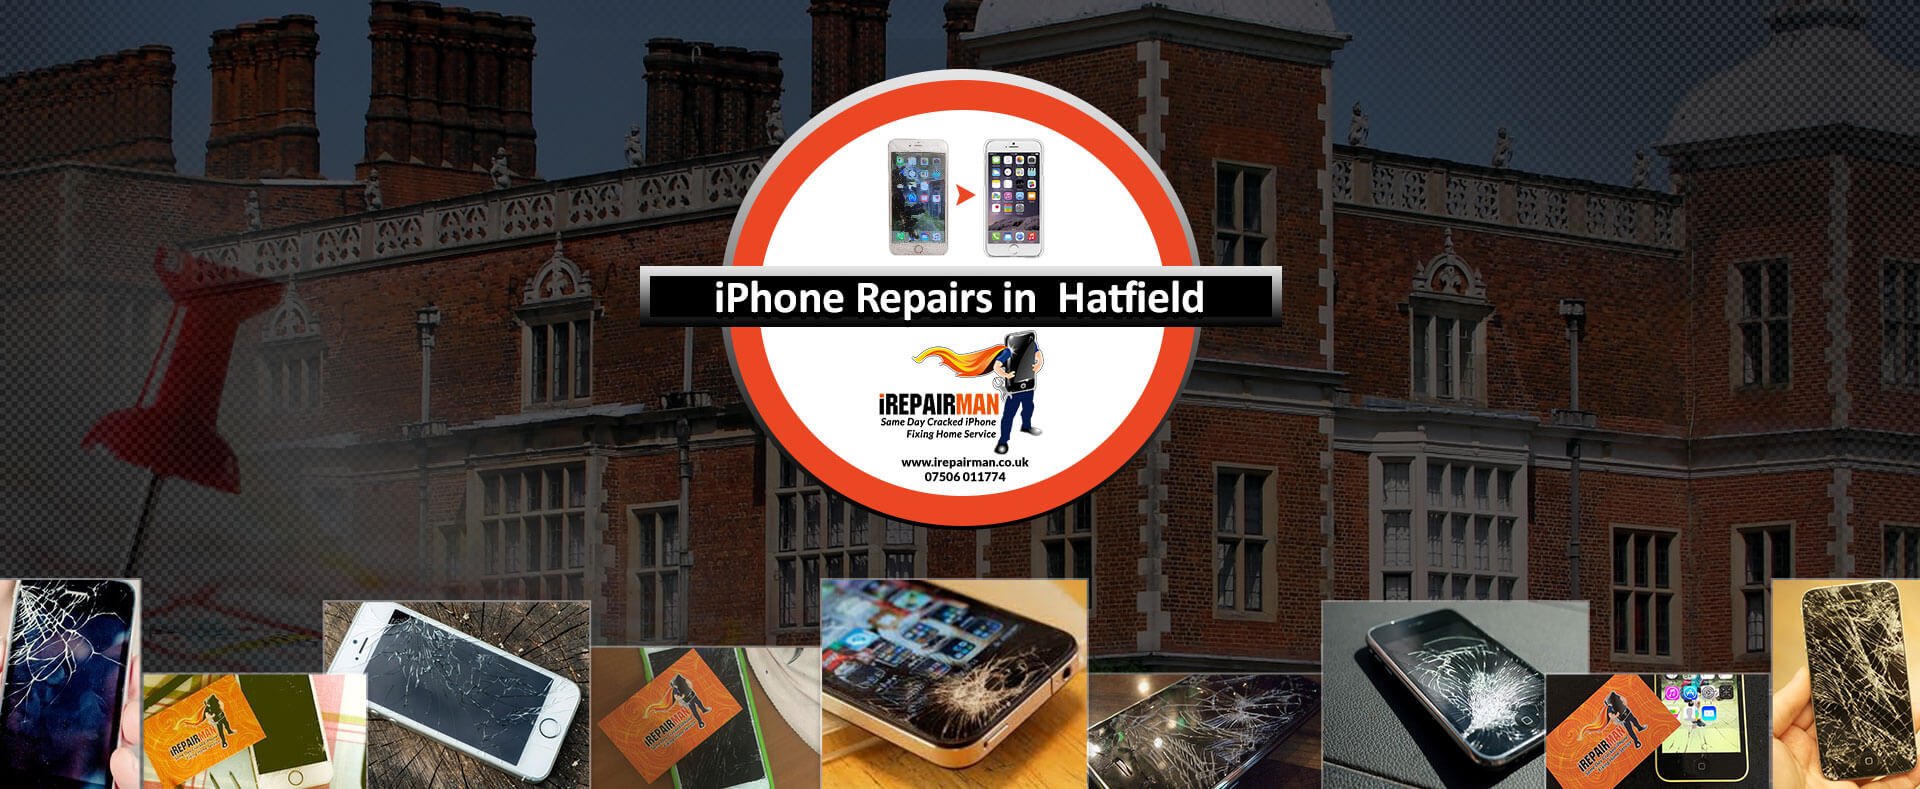 iPhone Repairs in Hatfield